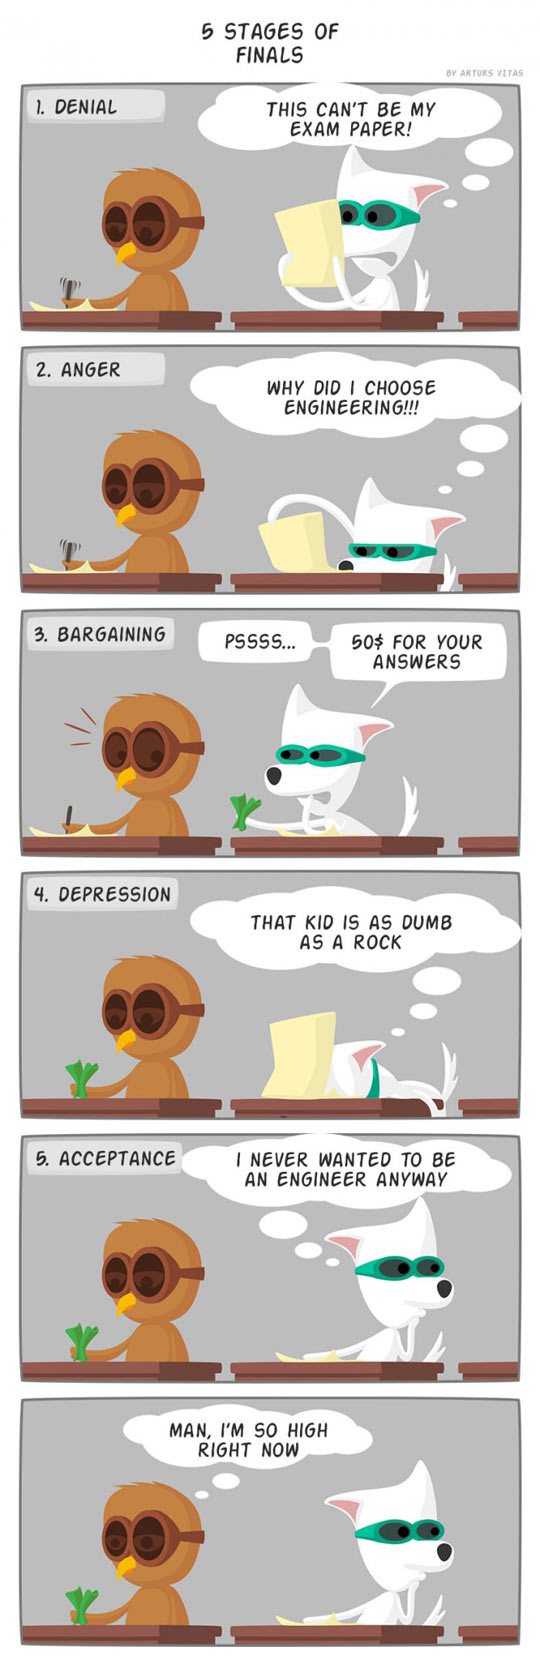 funny-five-stage-finals-comic